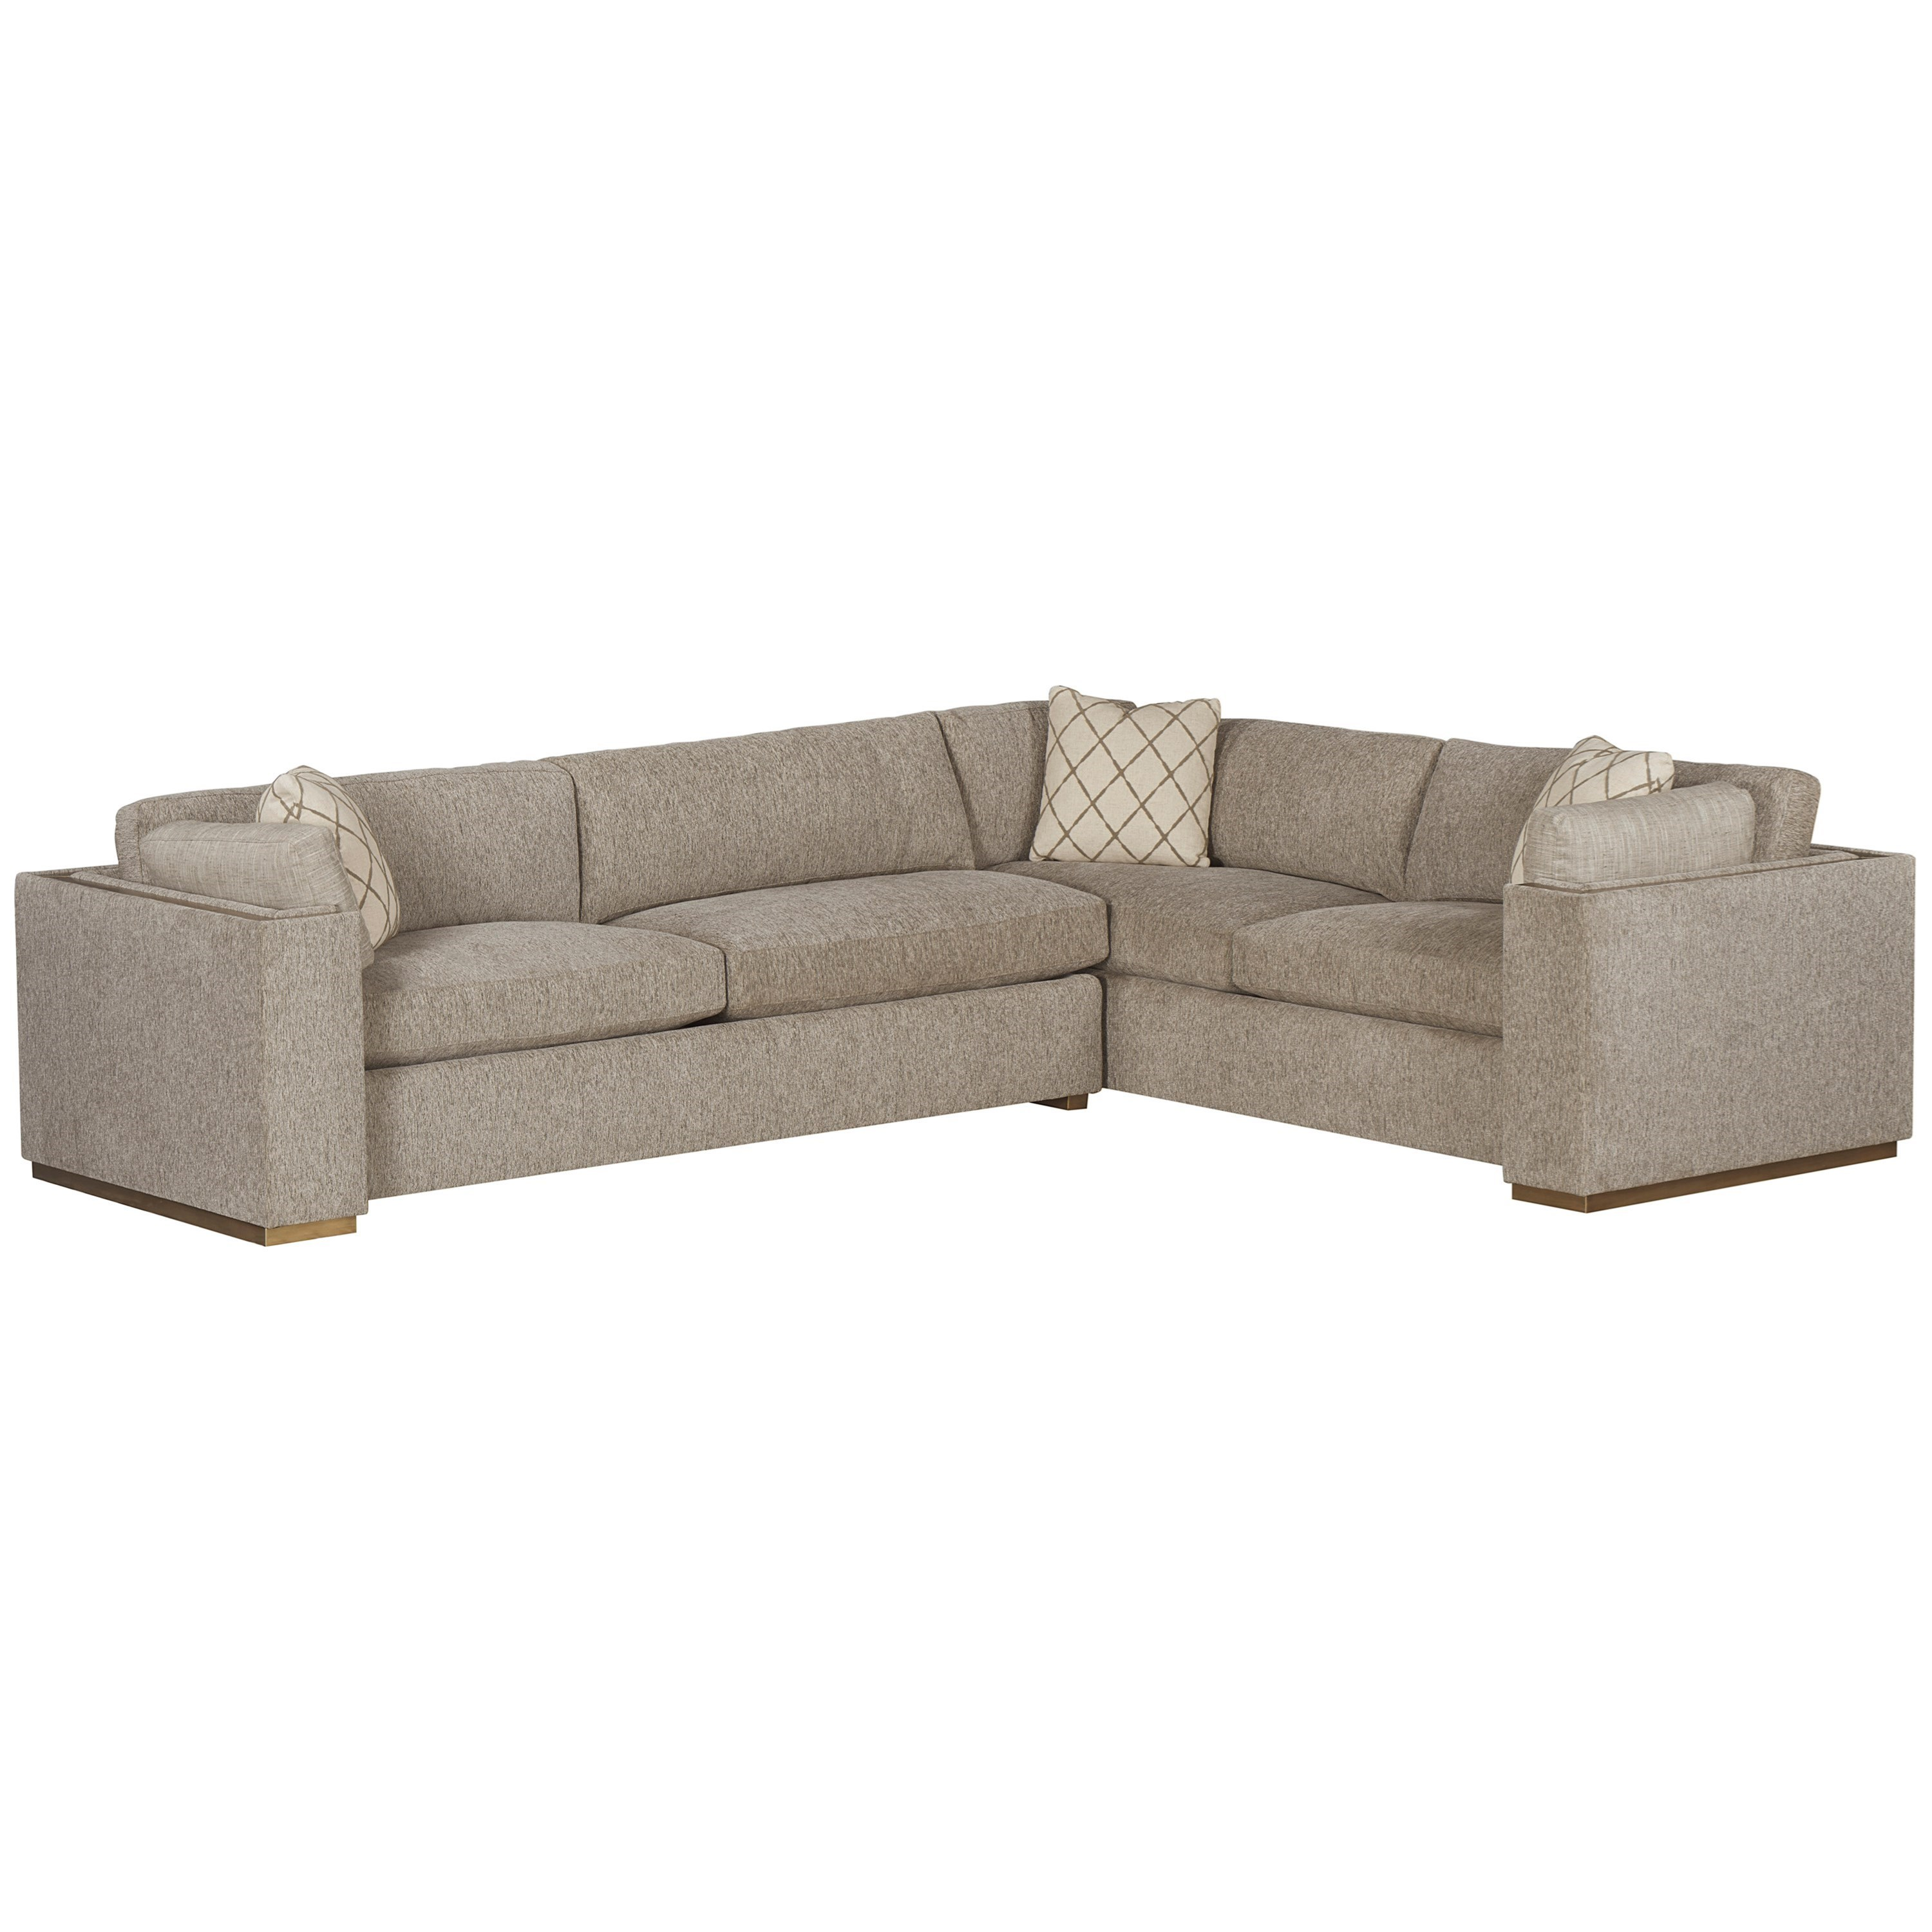 WoodWright Upholstery Sectional Sofa by A.R.T. Furniture Inc at Powell's Furniture and Mattress